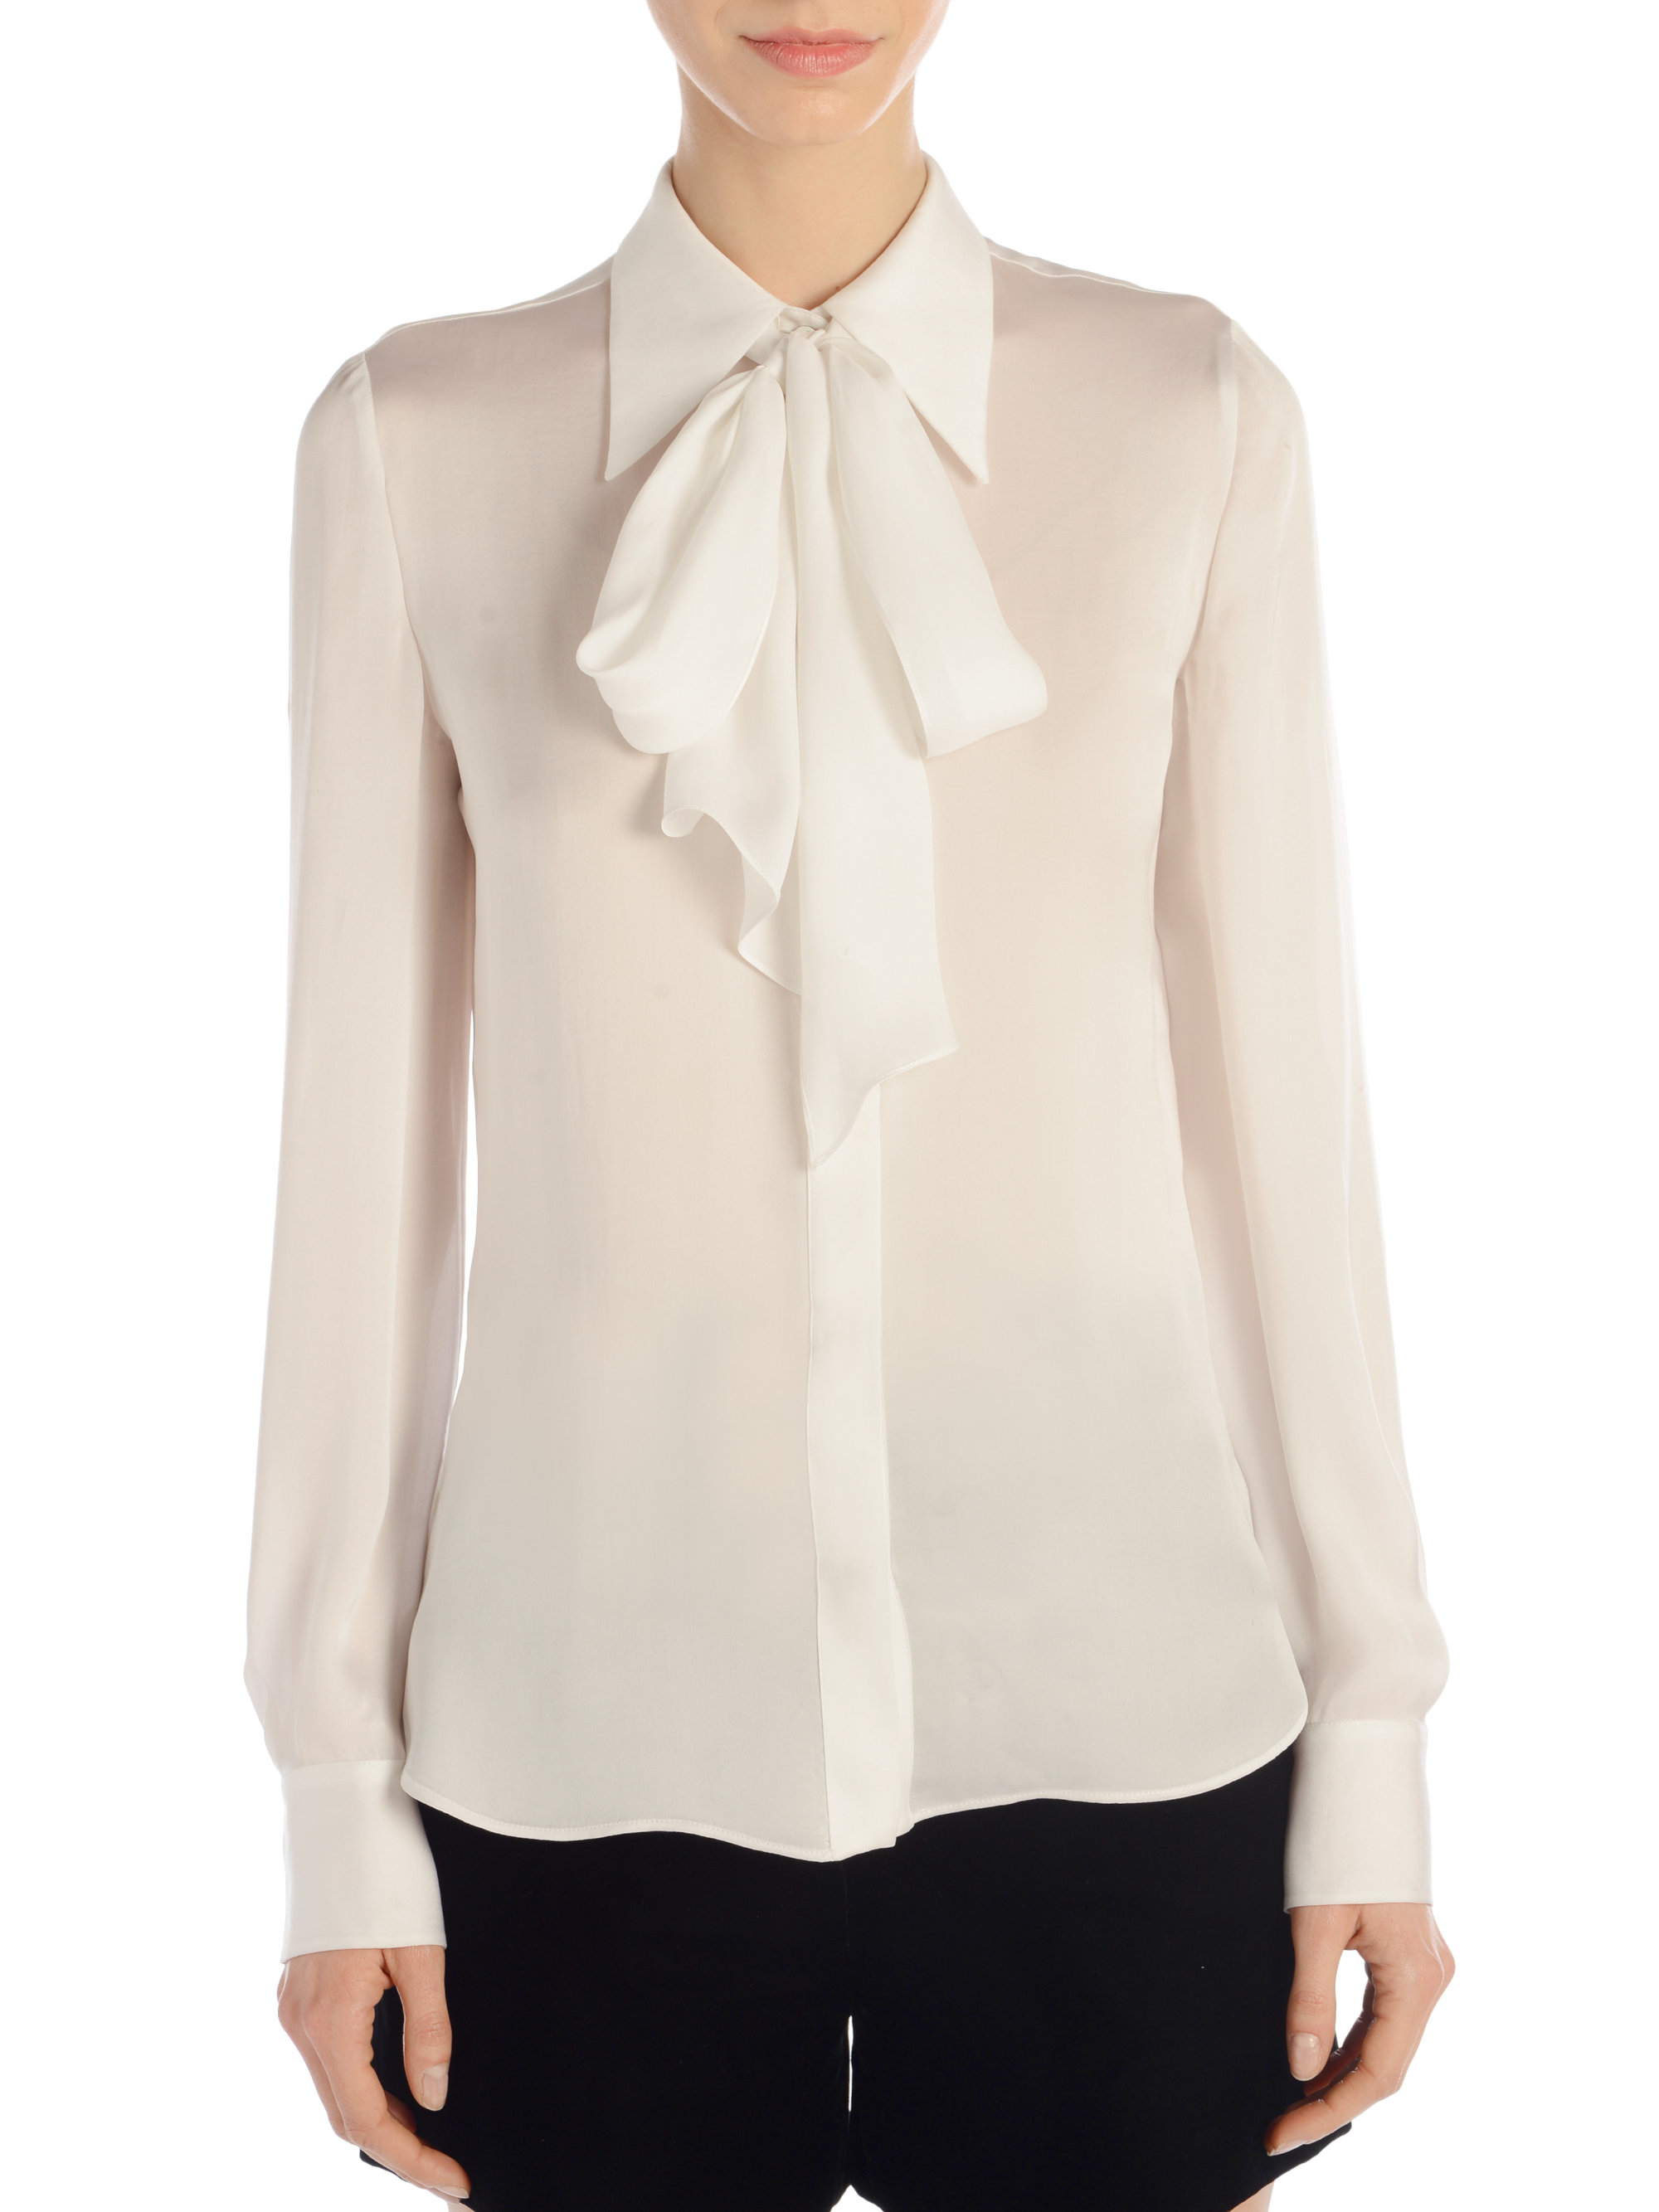 Women'S White Blouse With Tie 37